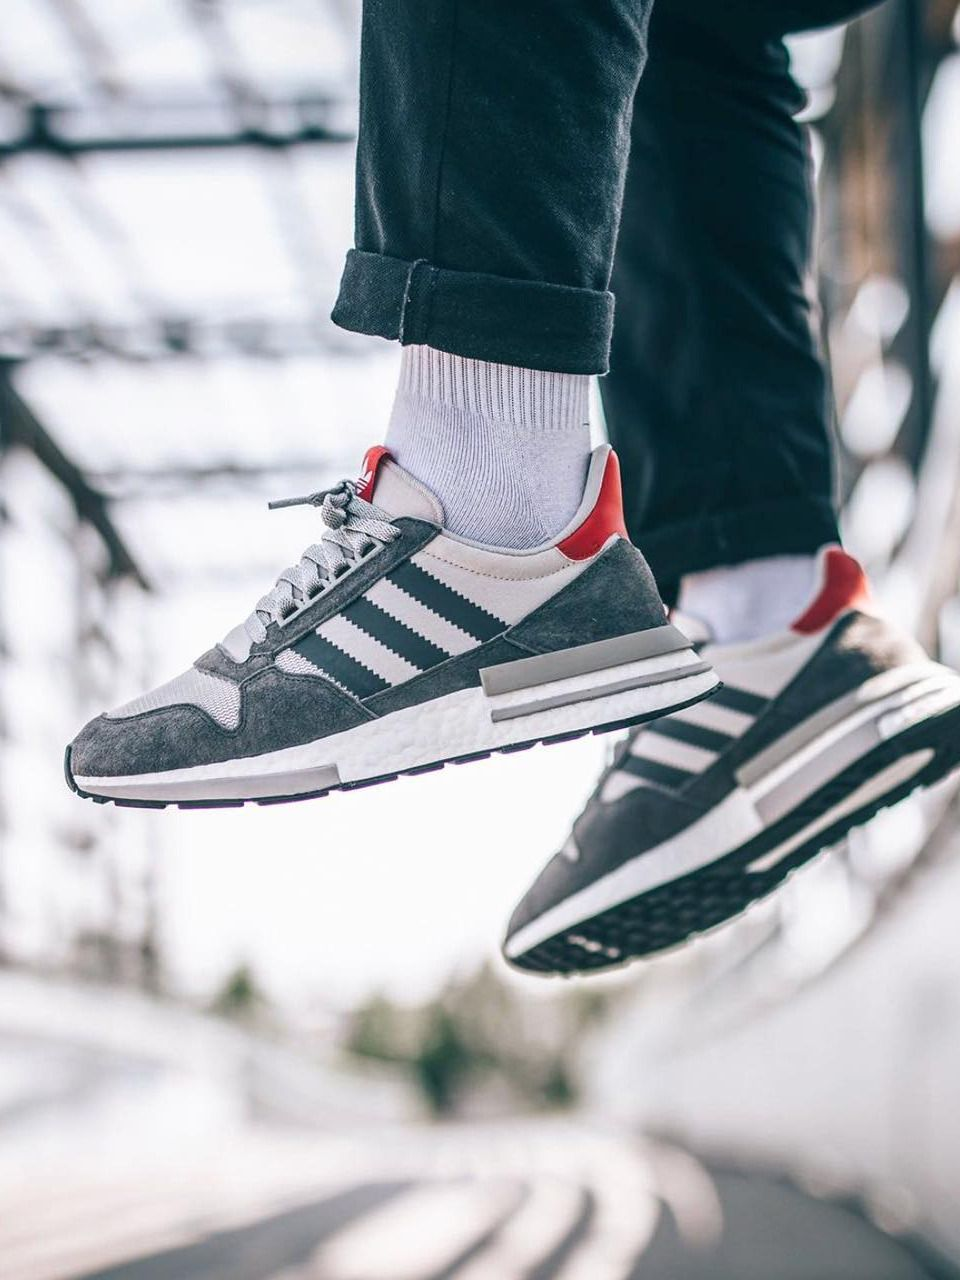 sale retailer 1ad34 c5aa8 Adidas ZX 500 RM Grey - 2018 (by chrisflanell)